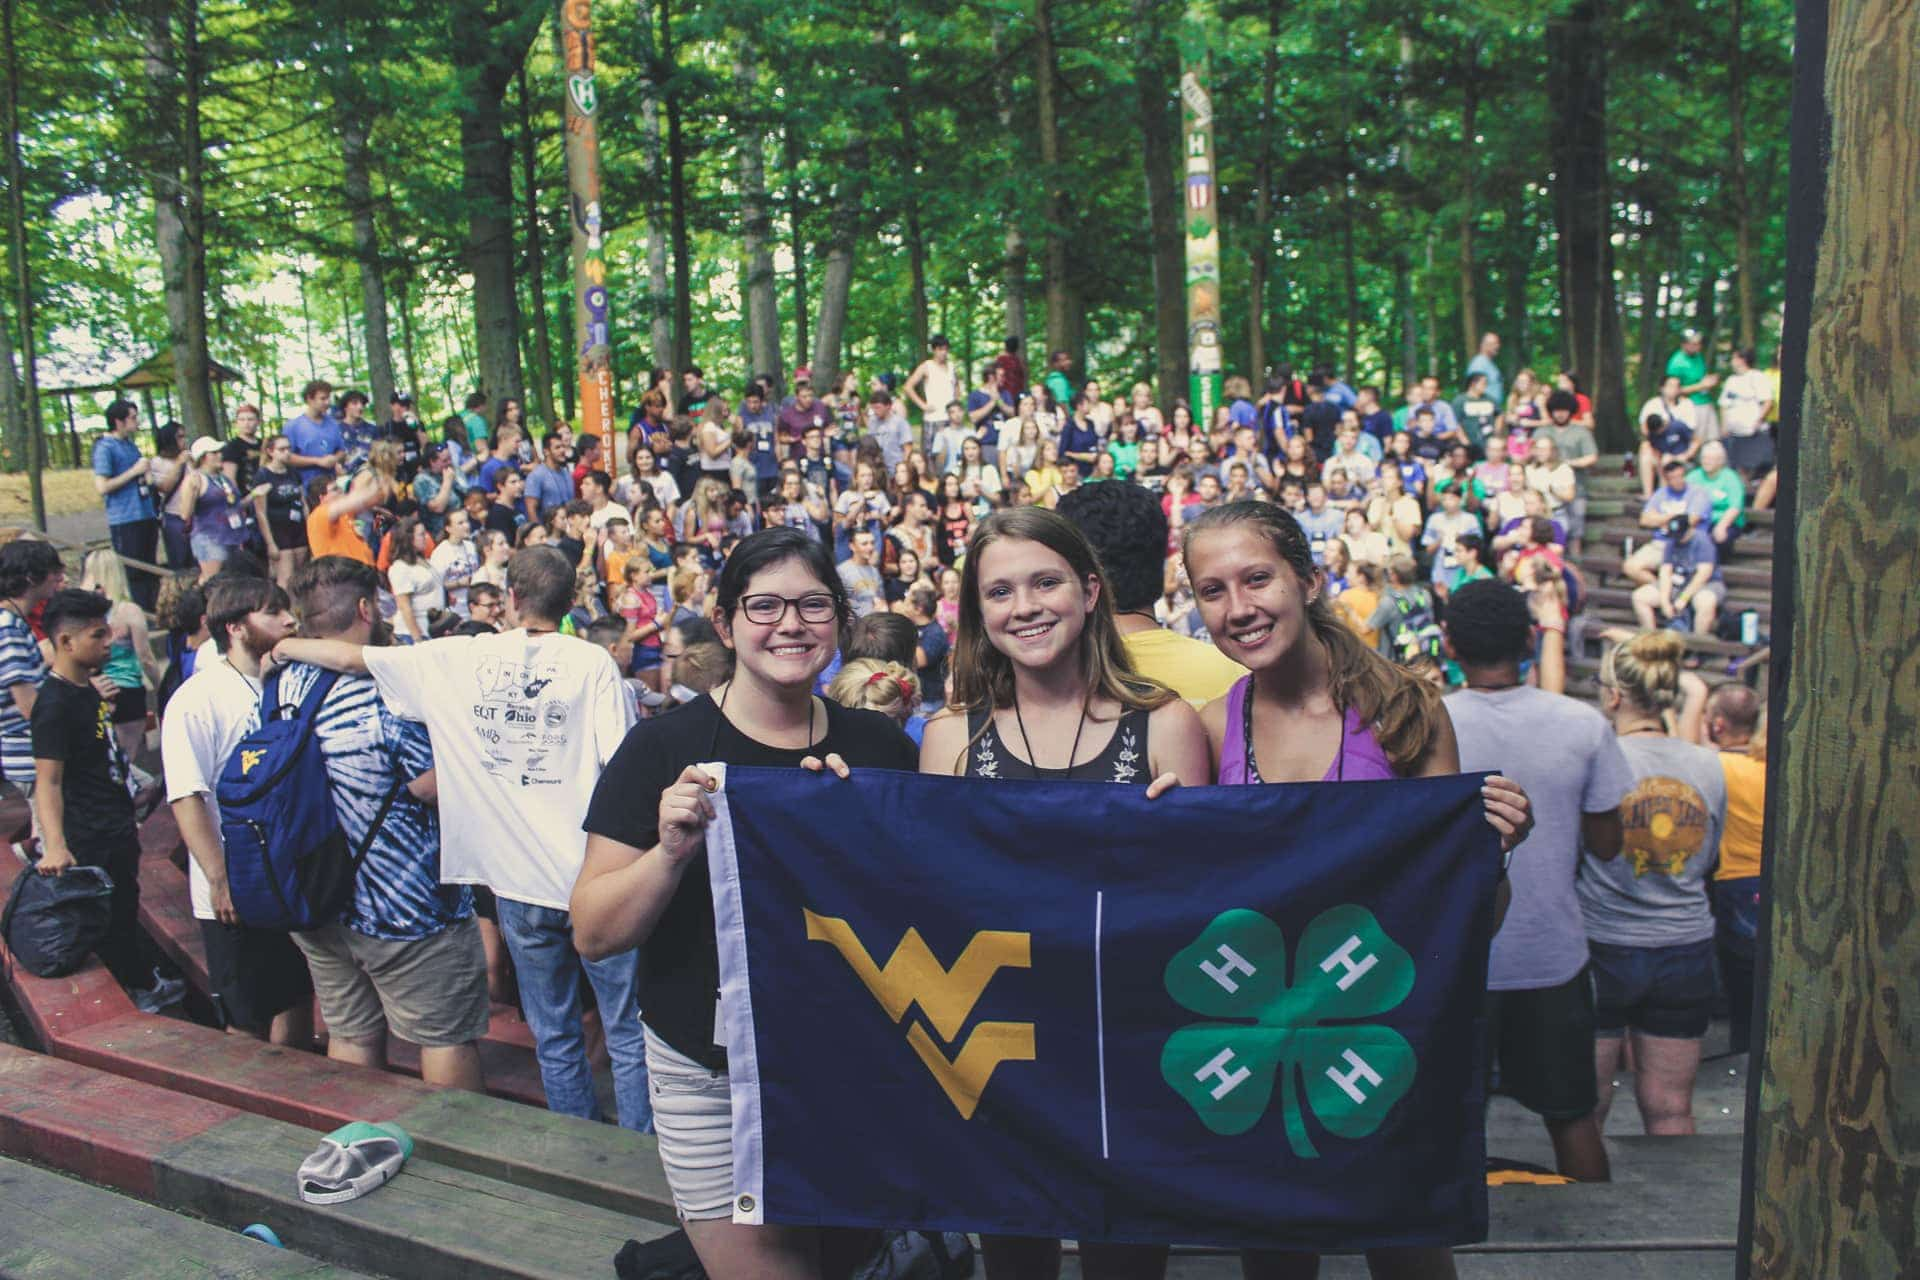 Couple leaves behind a legacy of scholarship for future WVU students, 4-H'ers